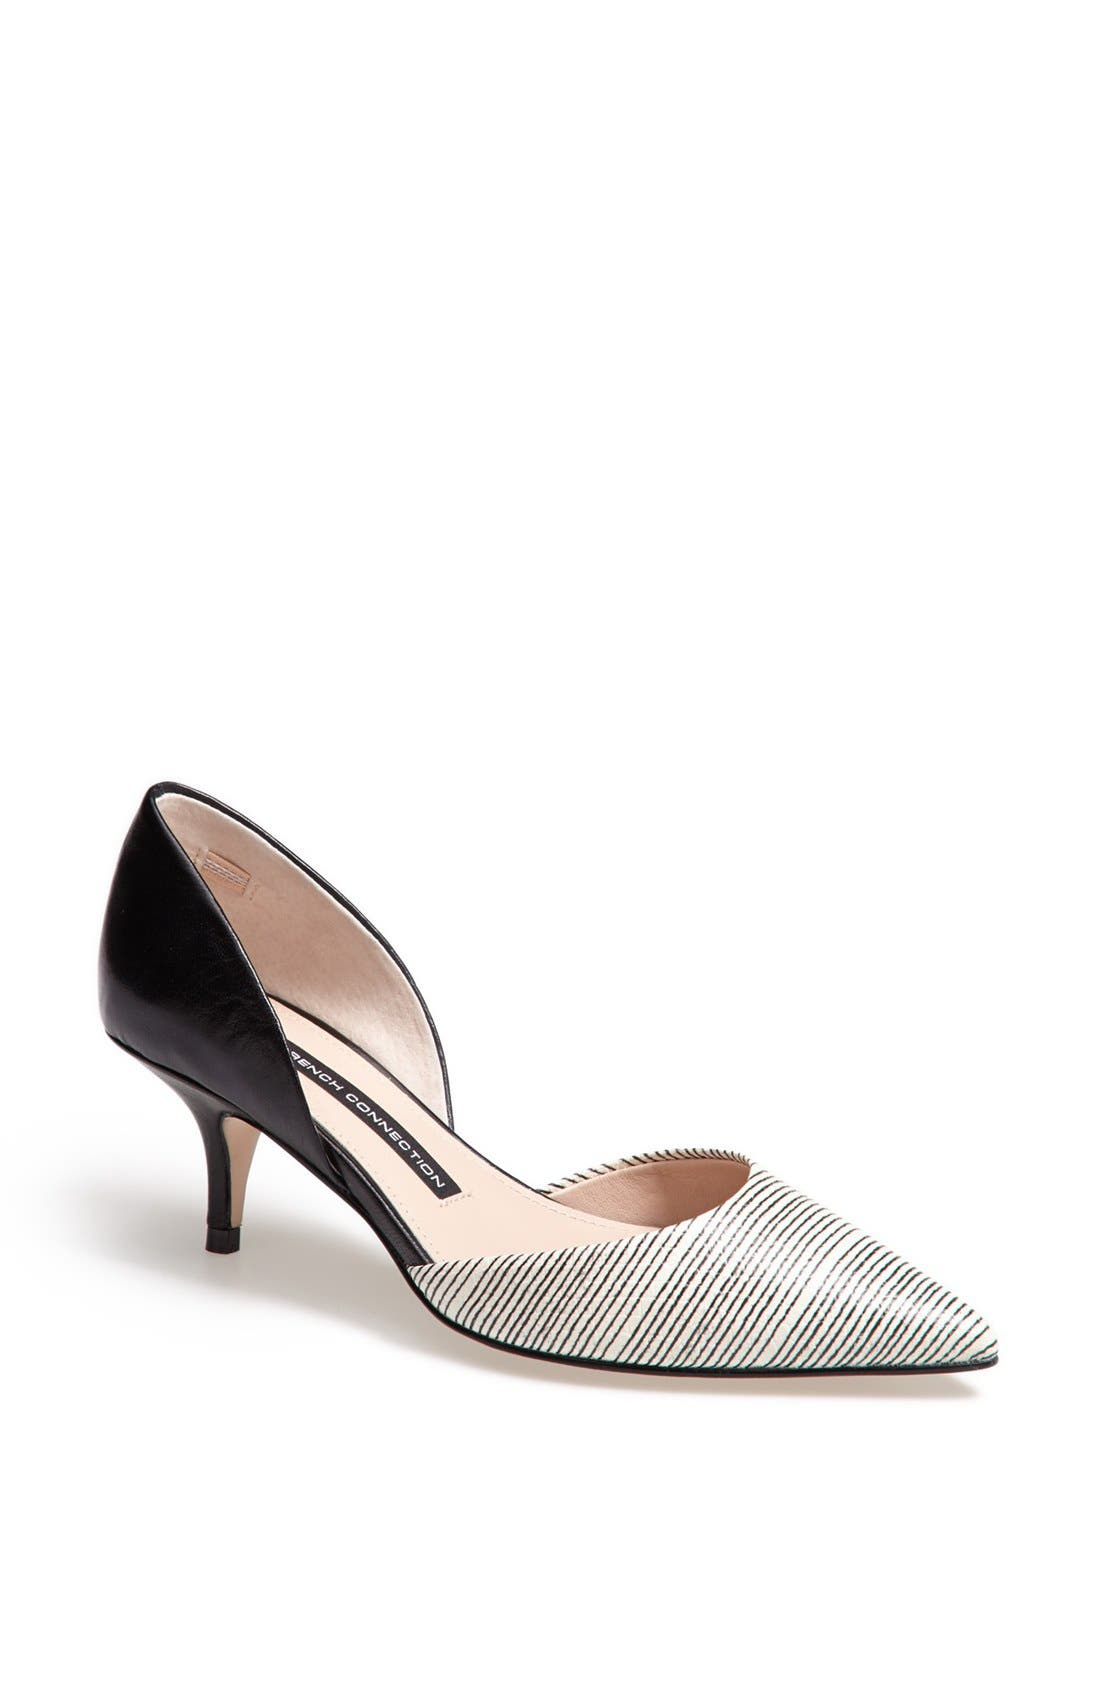 Main Image - French Connection 'Effie' Pointy Toe d'Orsay Pump